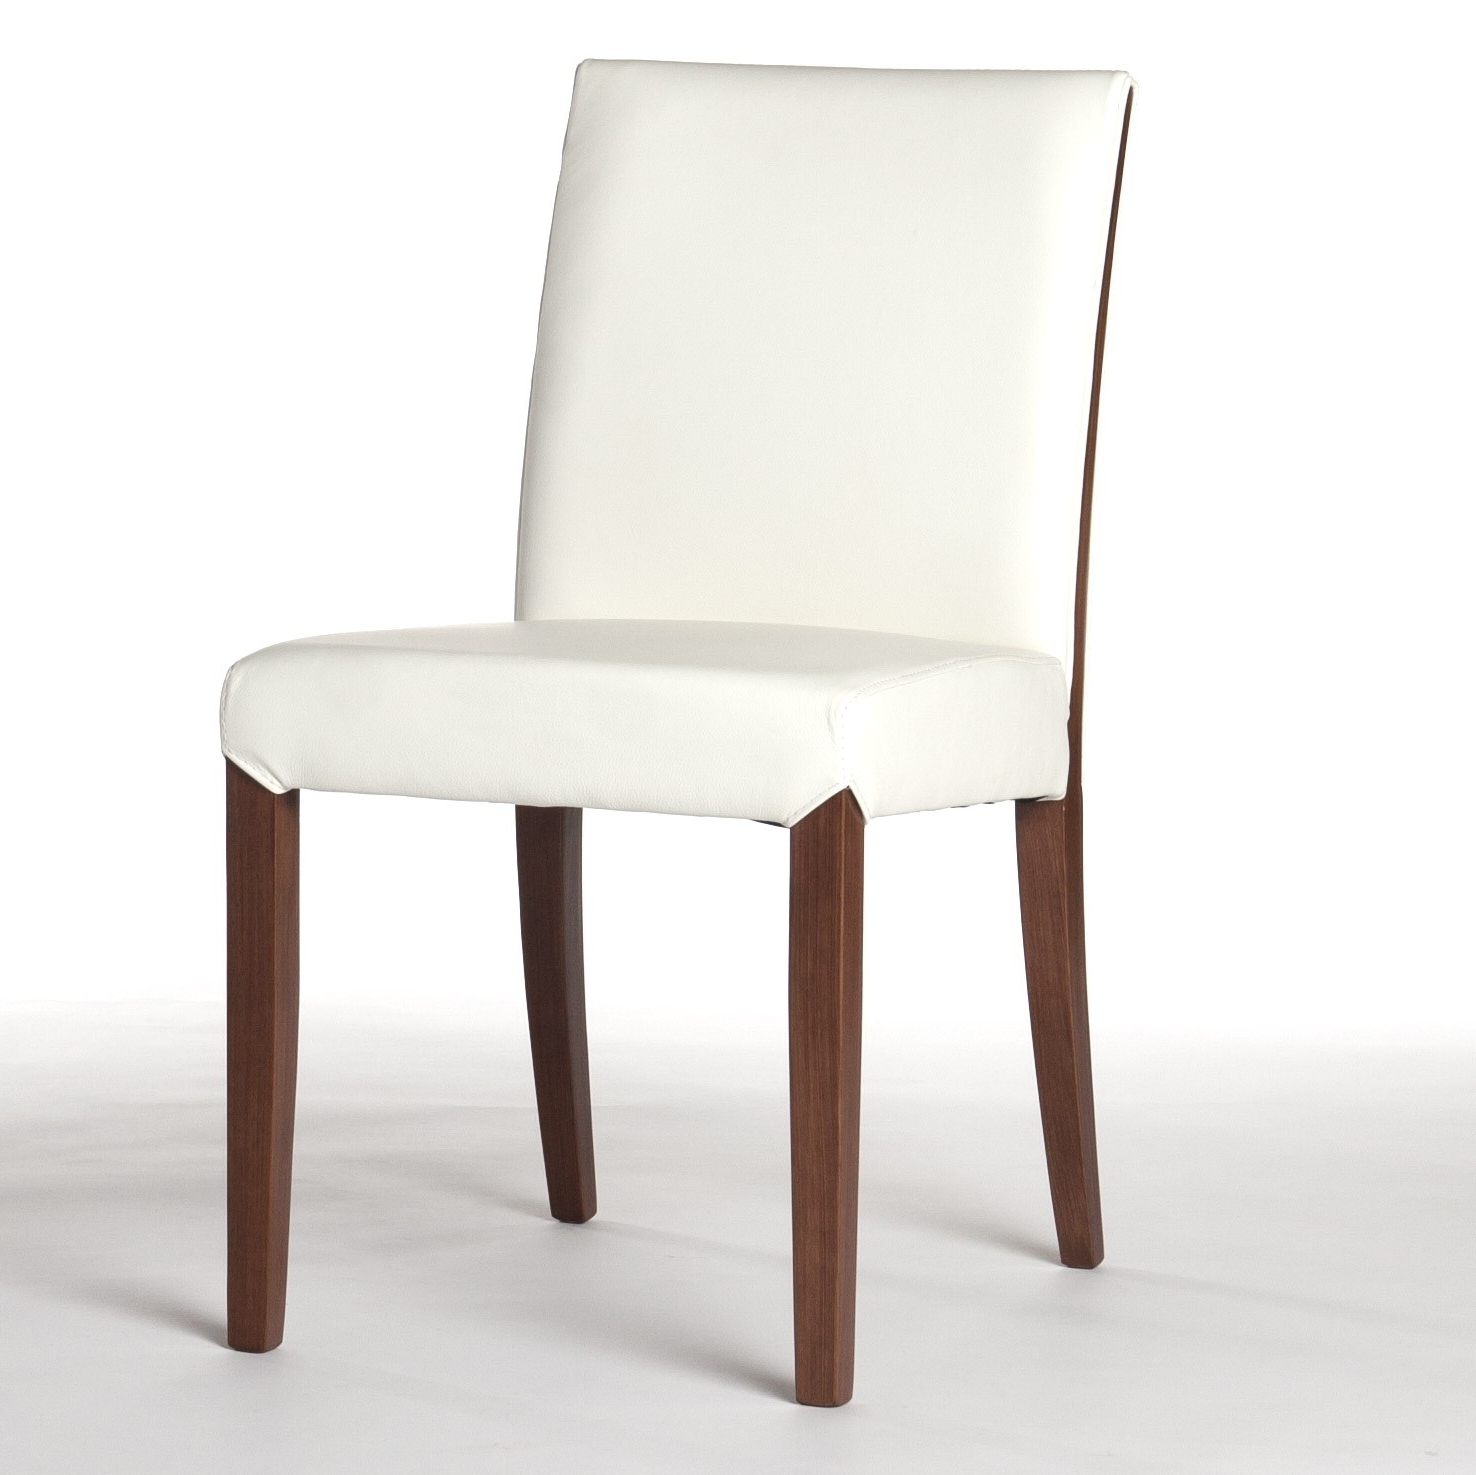 Real Leather Dining Chair In White Intended For Current Real Leather Dining Chairs (View 13 of 25)